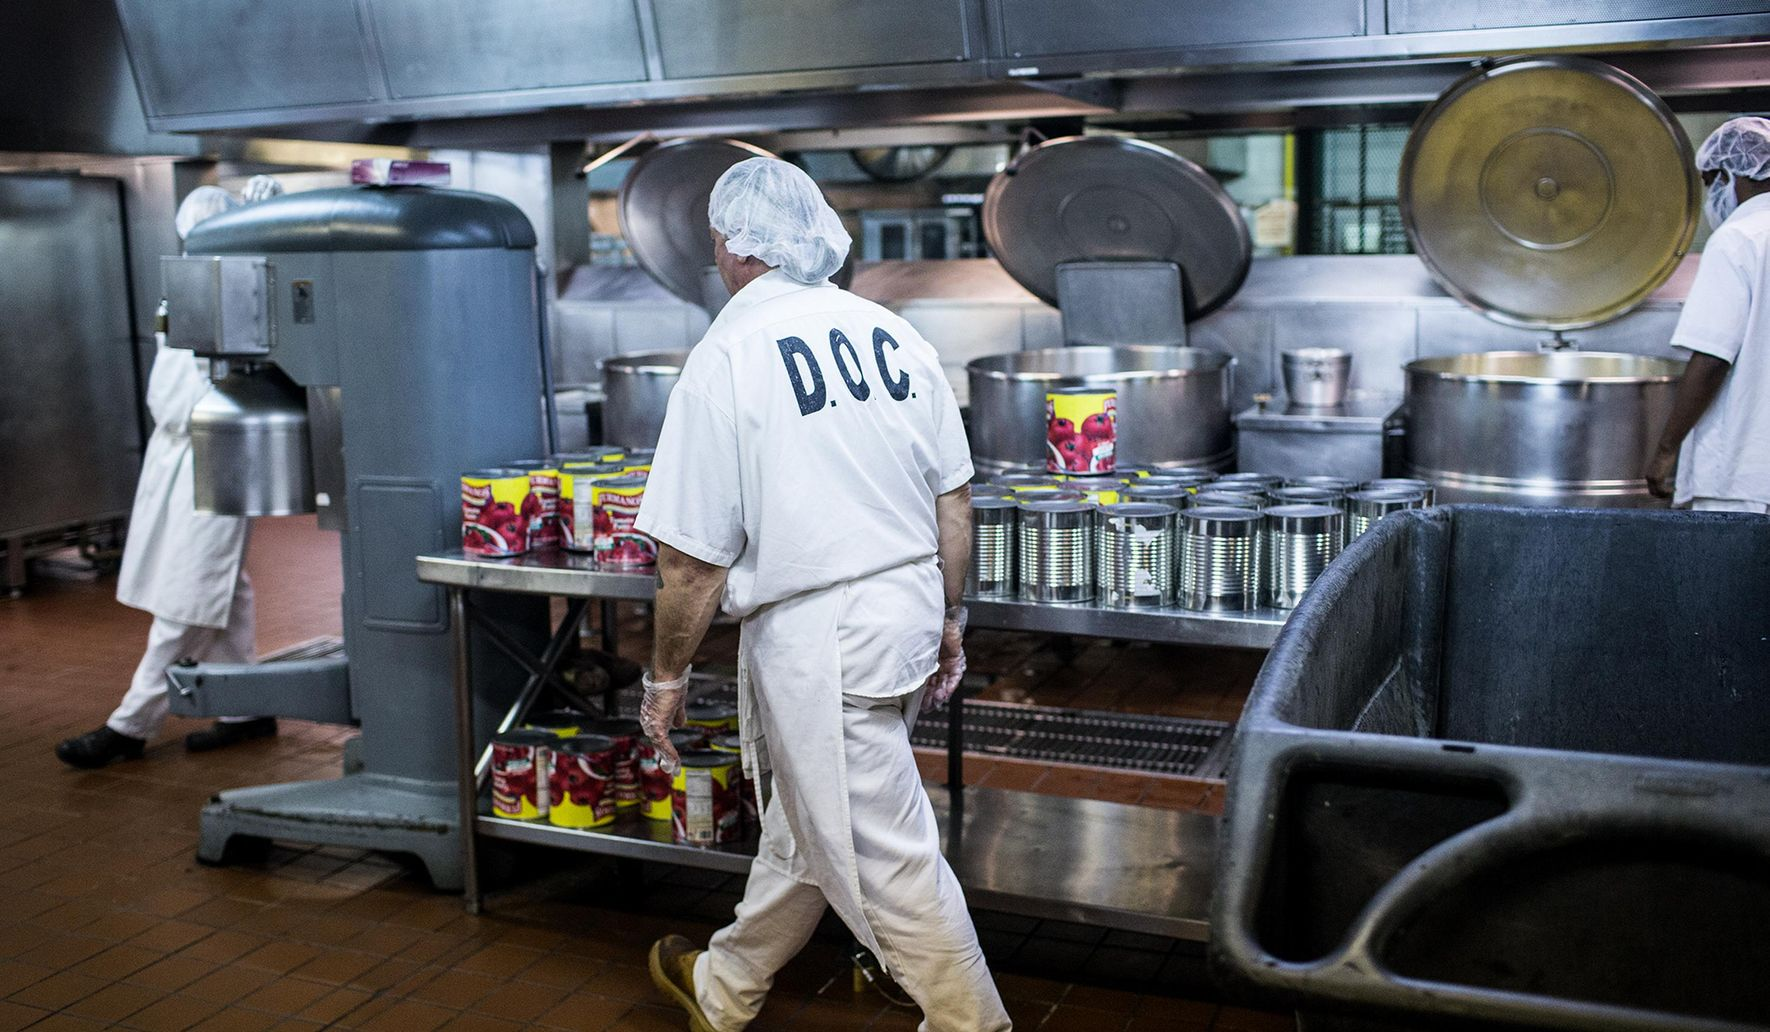 Pennsylvania prison food not just bread and water